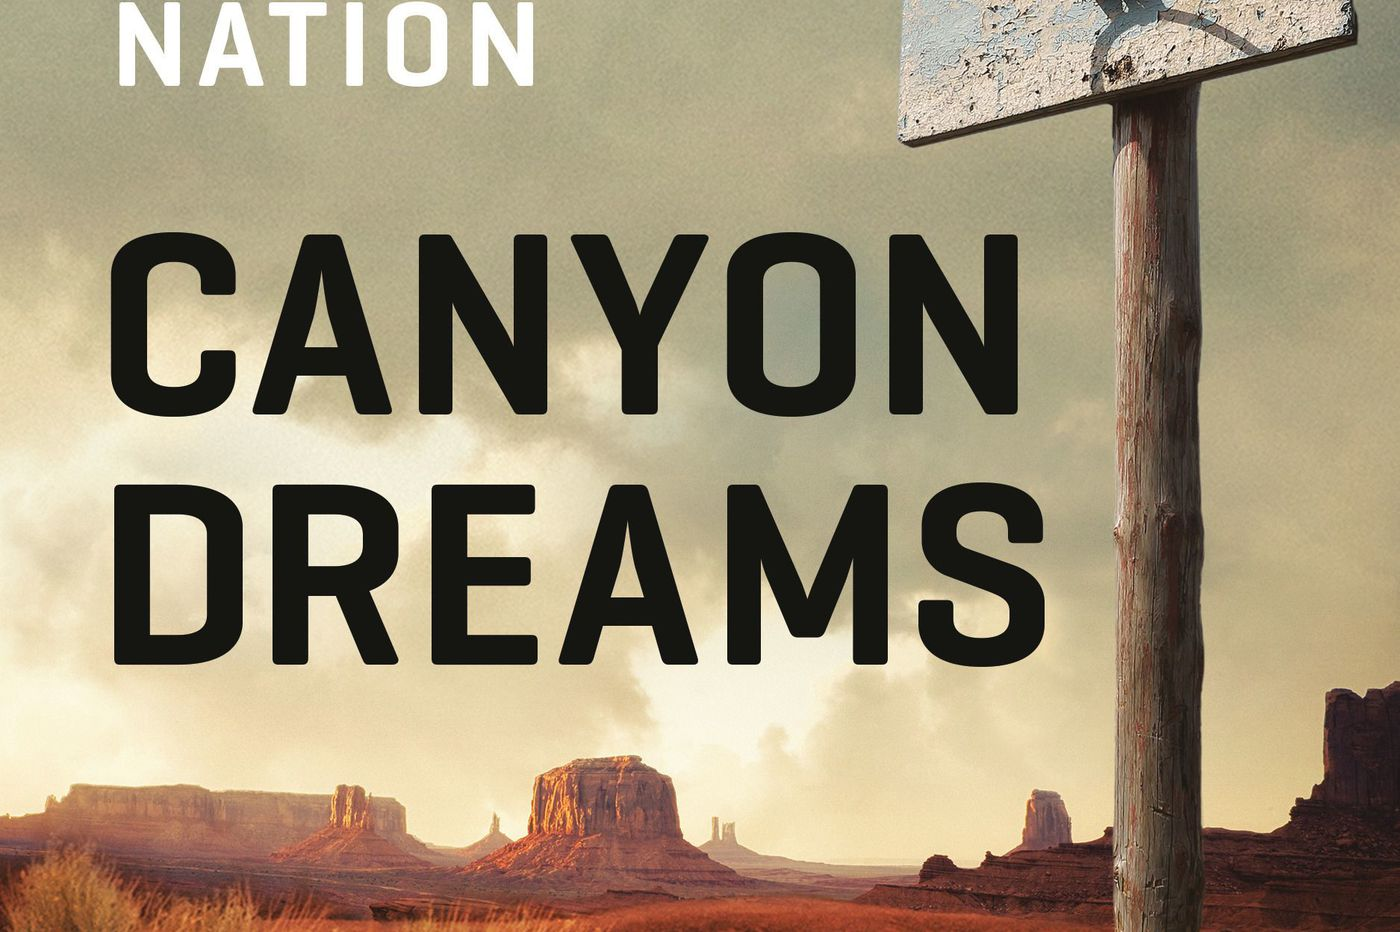 'Canyon Dreams' is more than a book about basketball | Book review